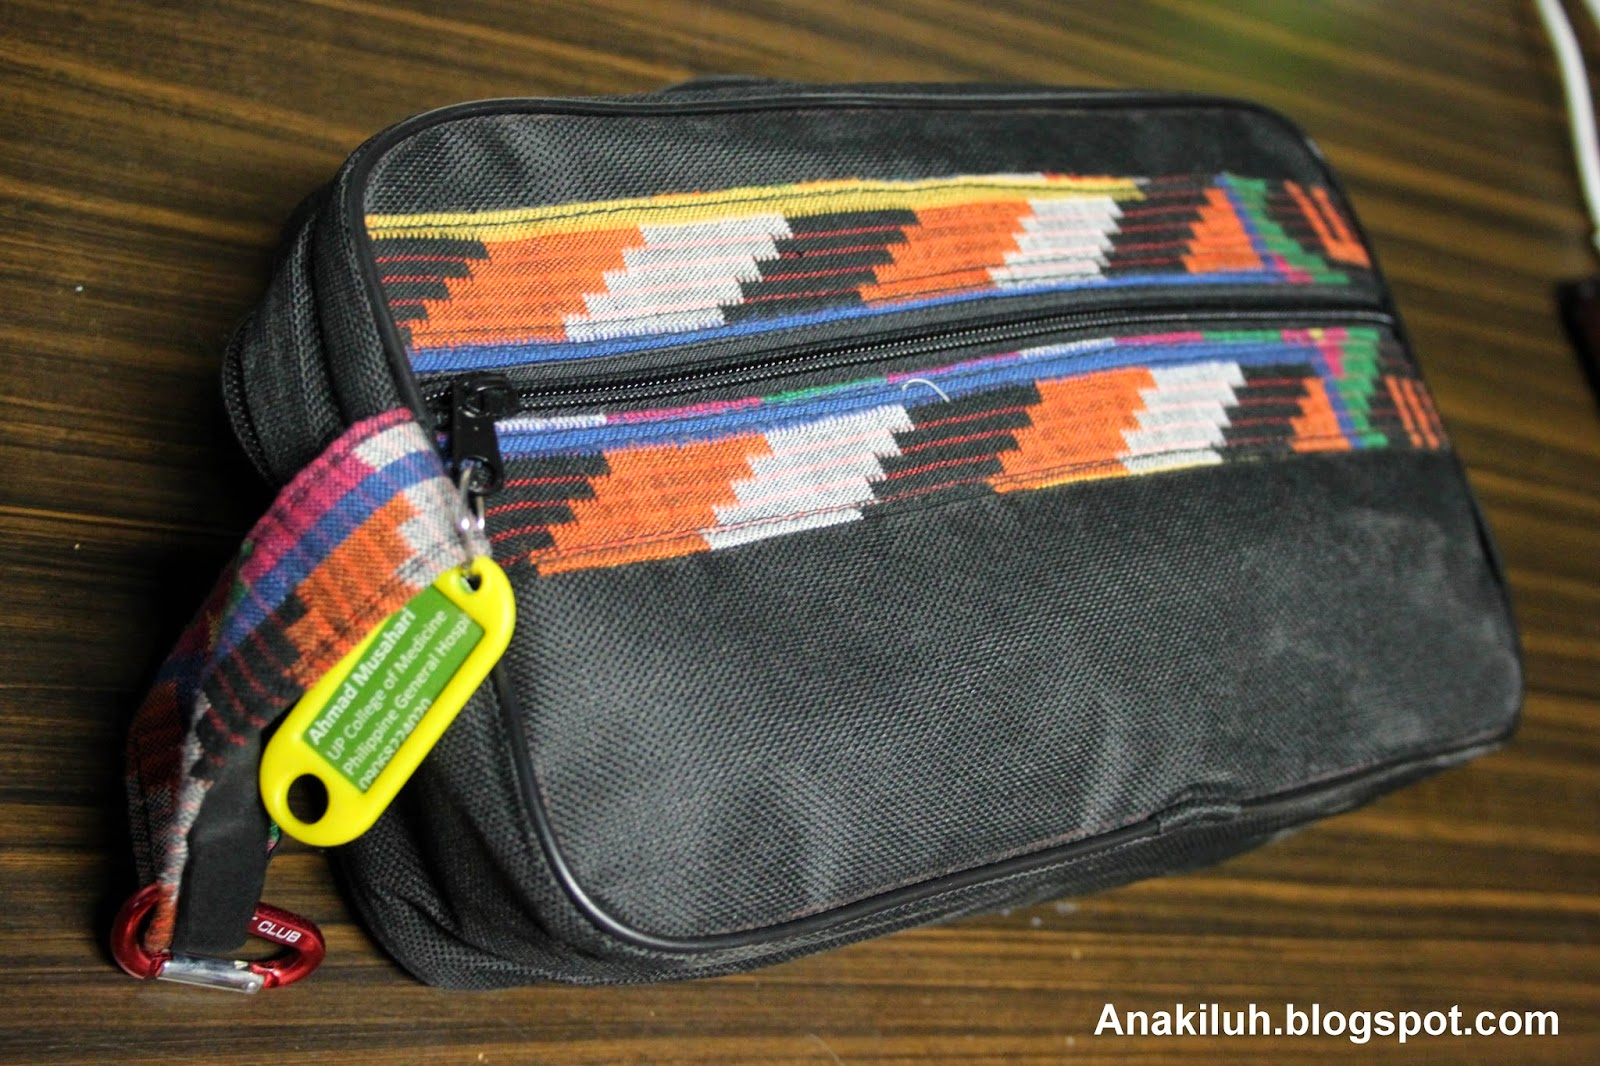 Tausug pouch medical stuff medstudents